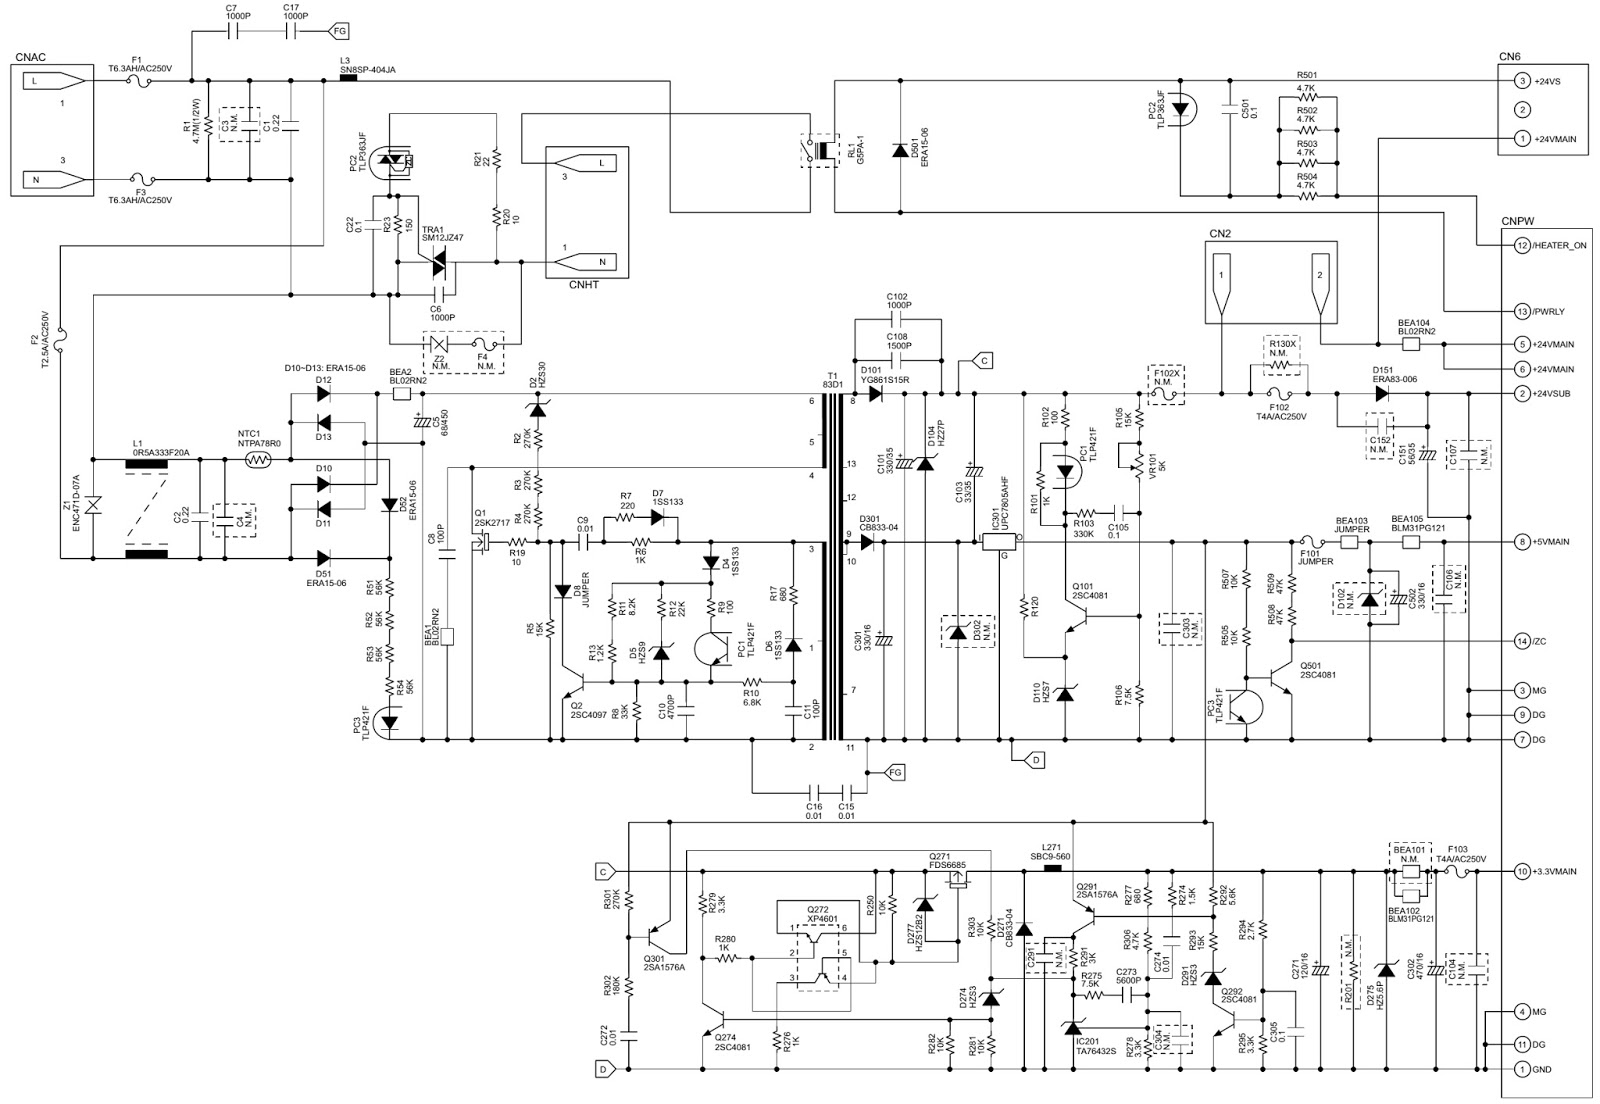 board schematic powersupplycircuit circuit diagram seekiccom 216